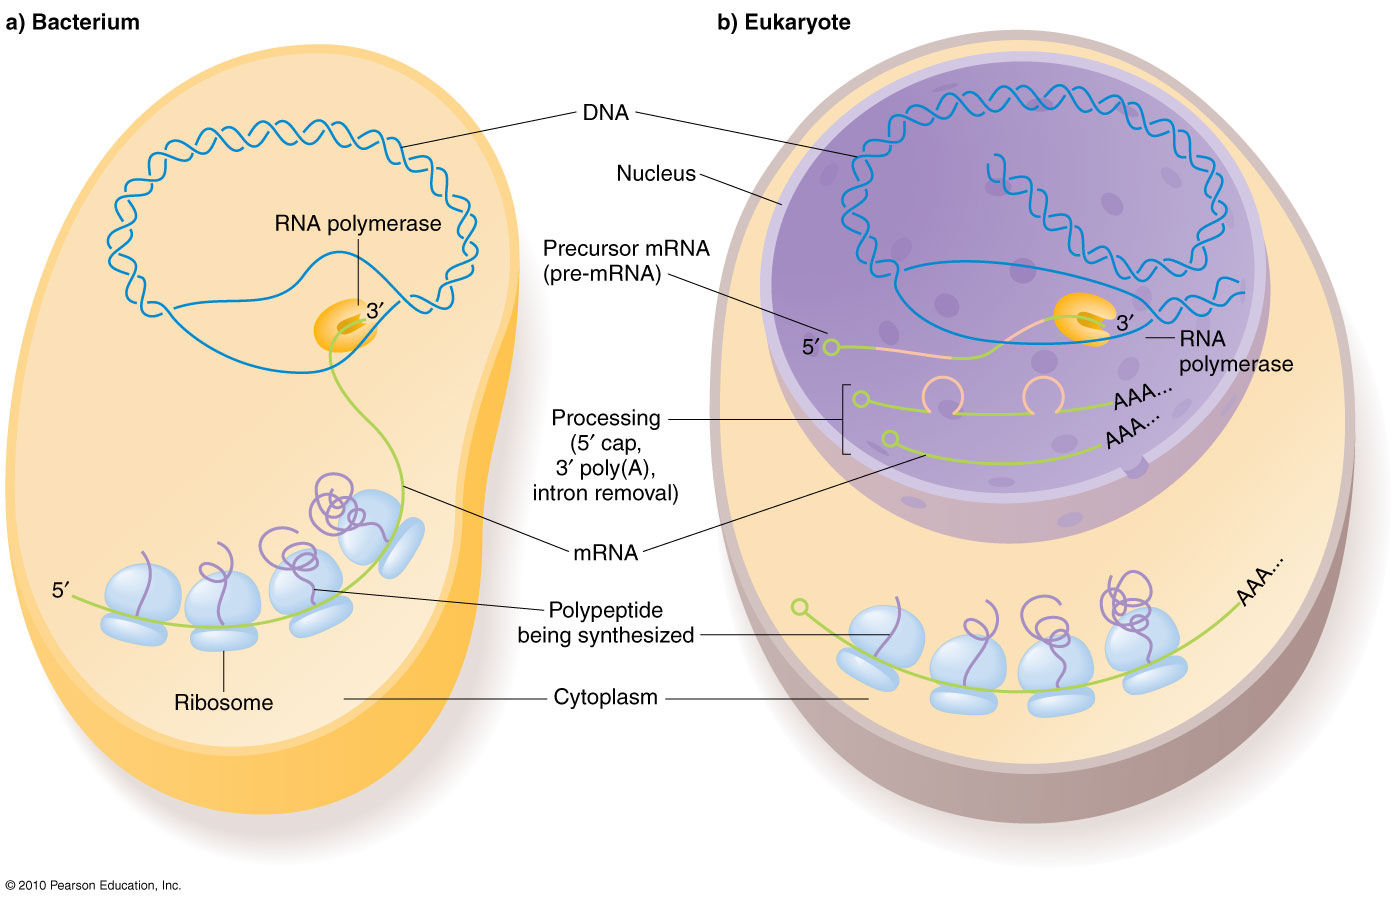 The central dogma in prokaryotic versus eukaryotic cells